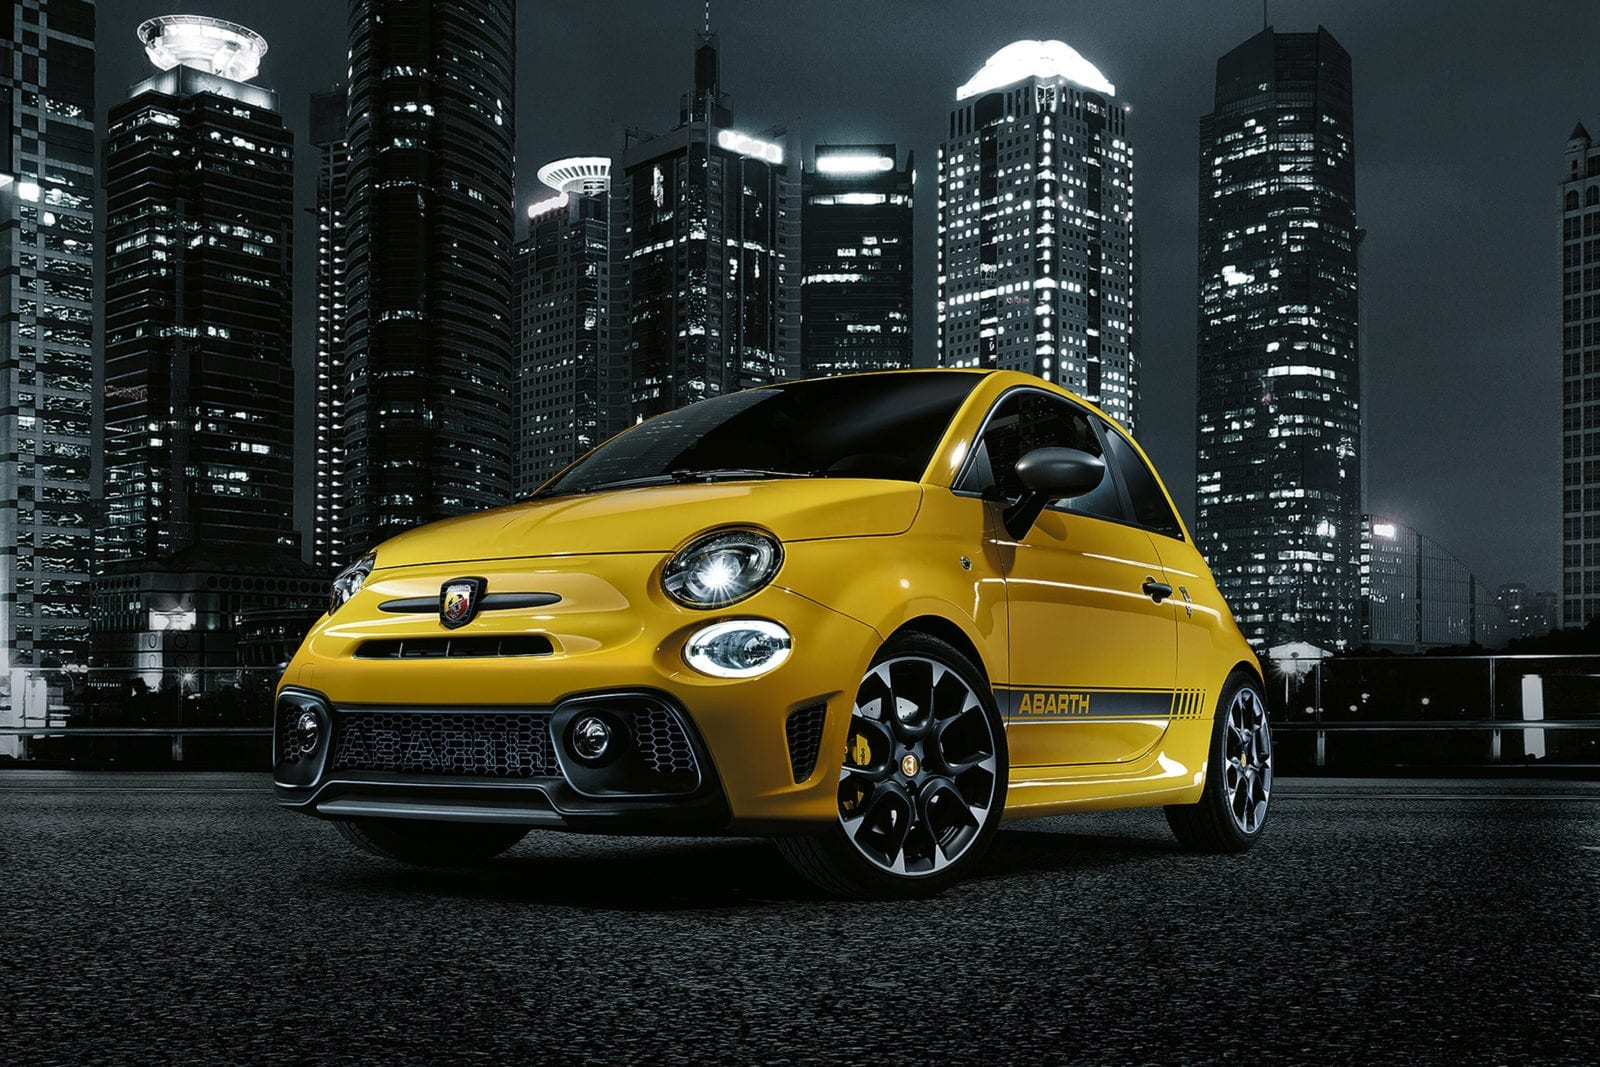 Yellow Abarth